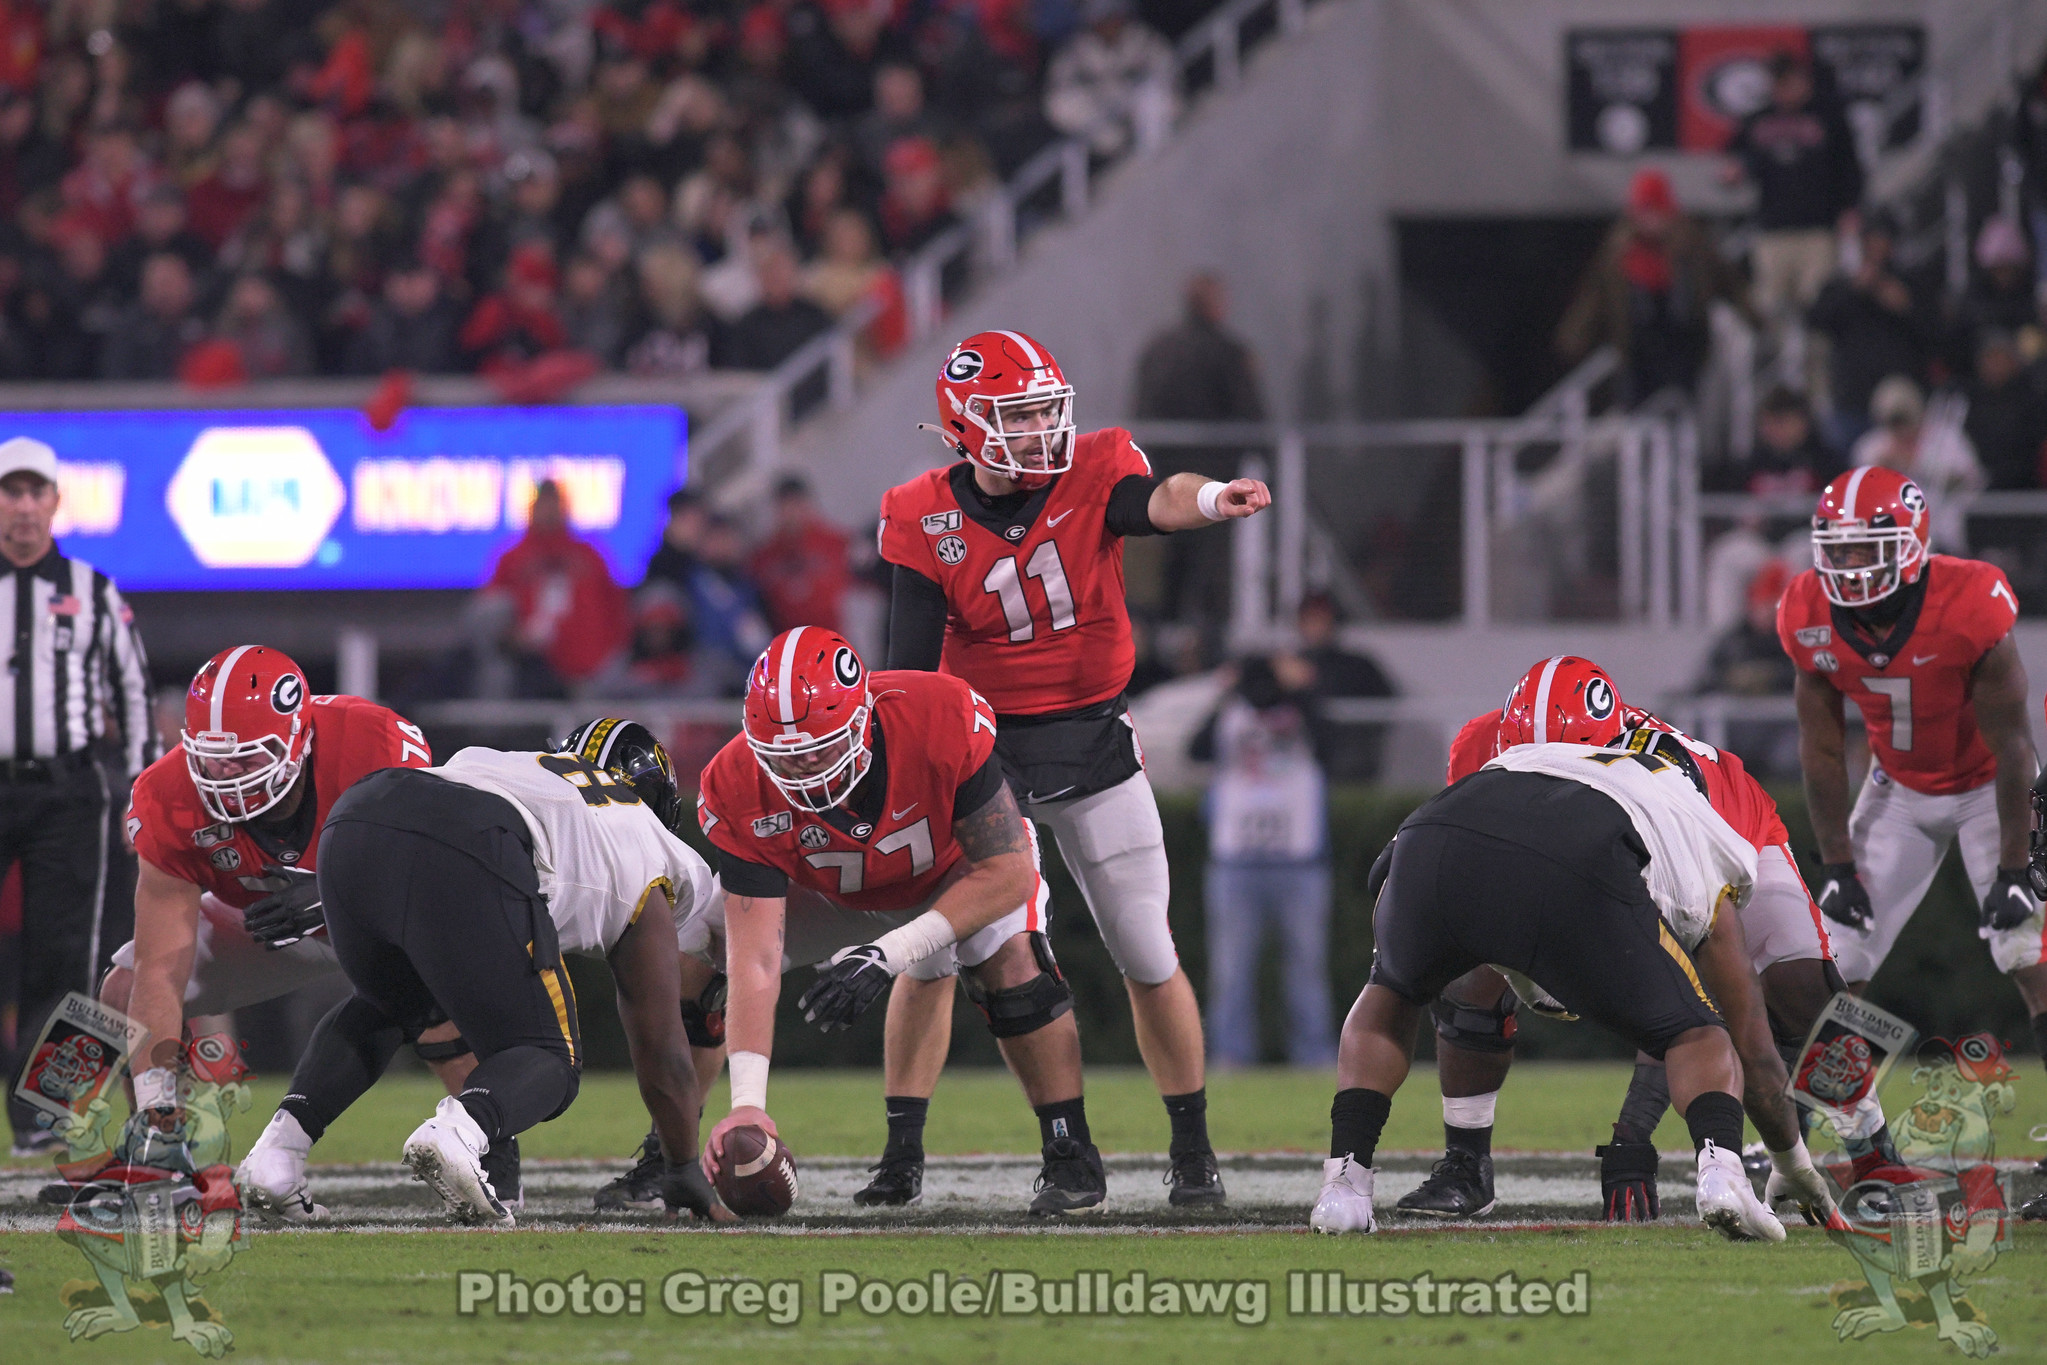 Cade Mays (77) under center